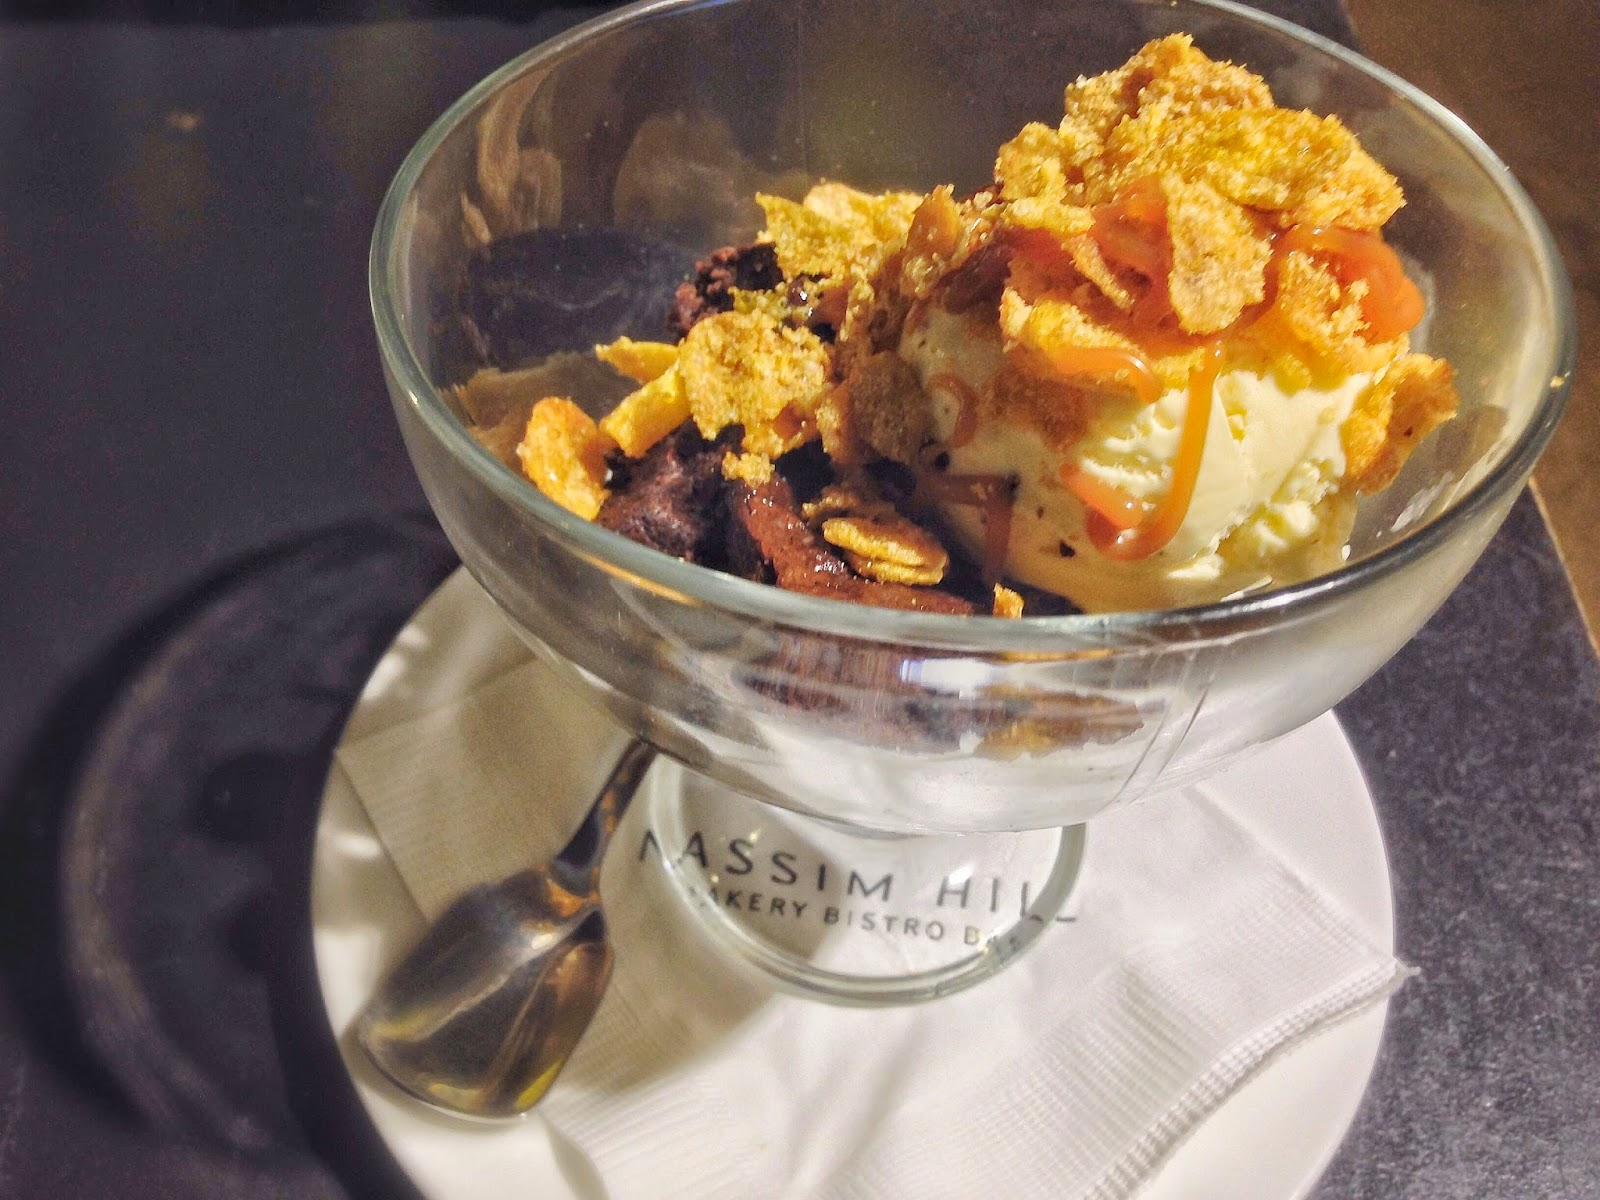 Brownie Parfait with Caramelised Corn Flakes, Salted Peanuts, Salted Caramel Sauce and Vanilla Ice-Cream ($10)